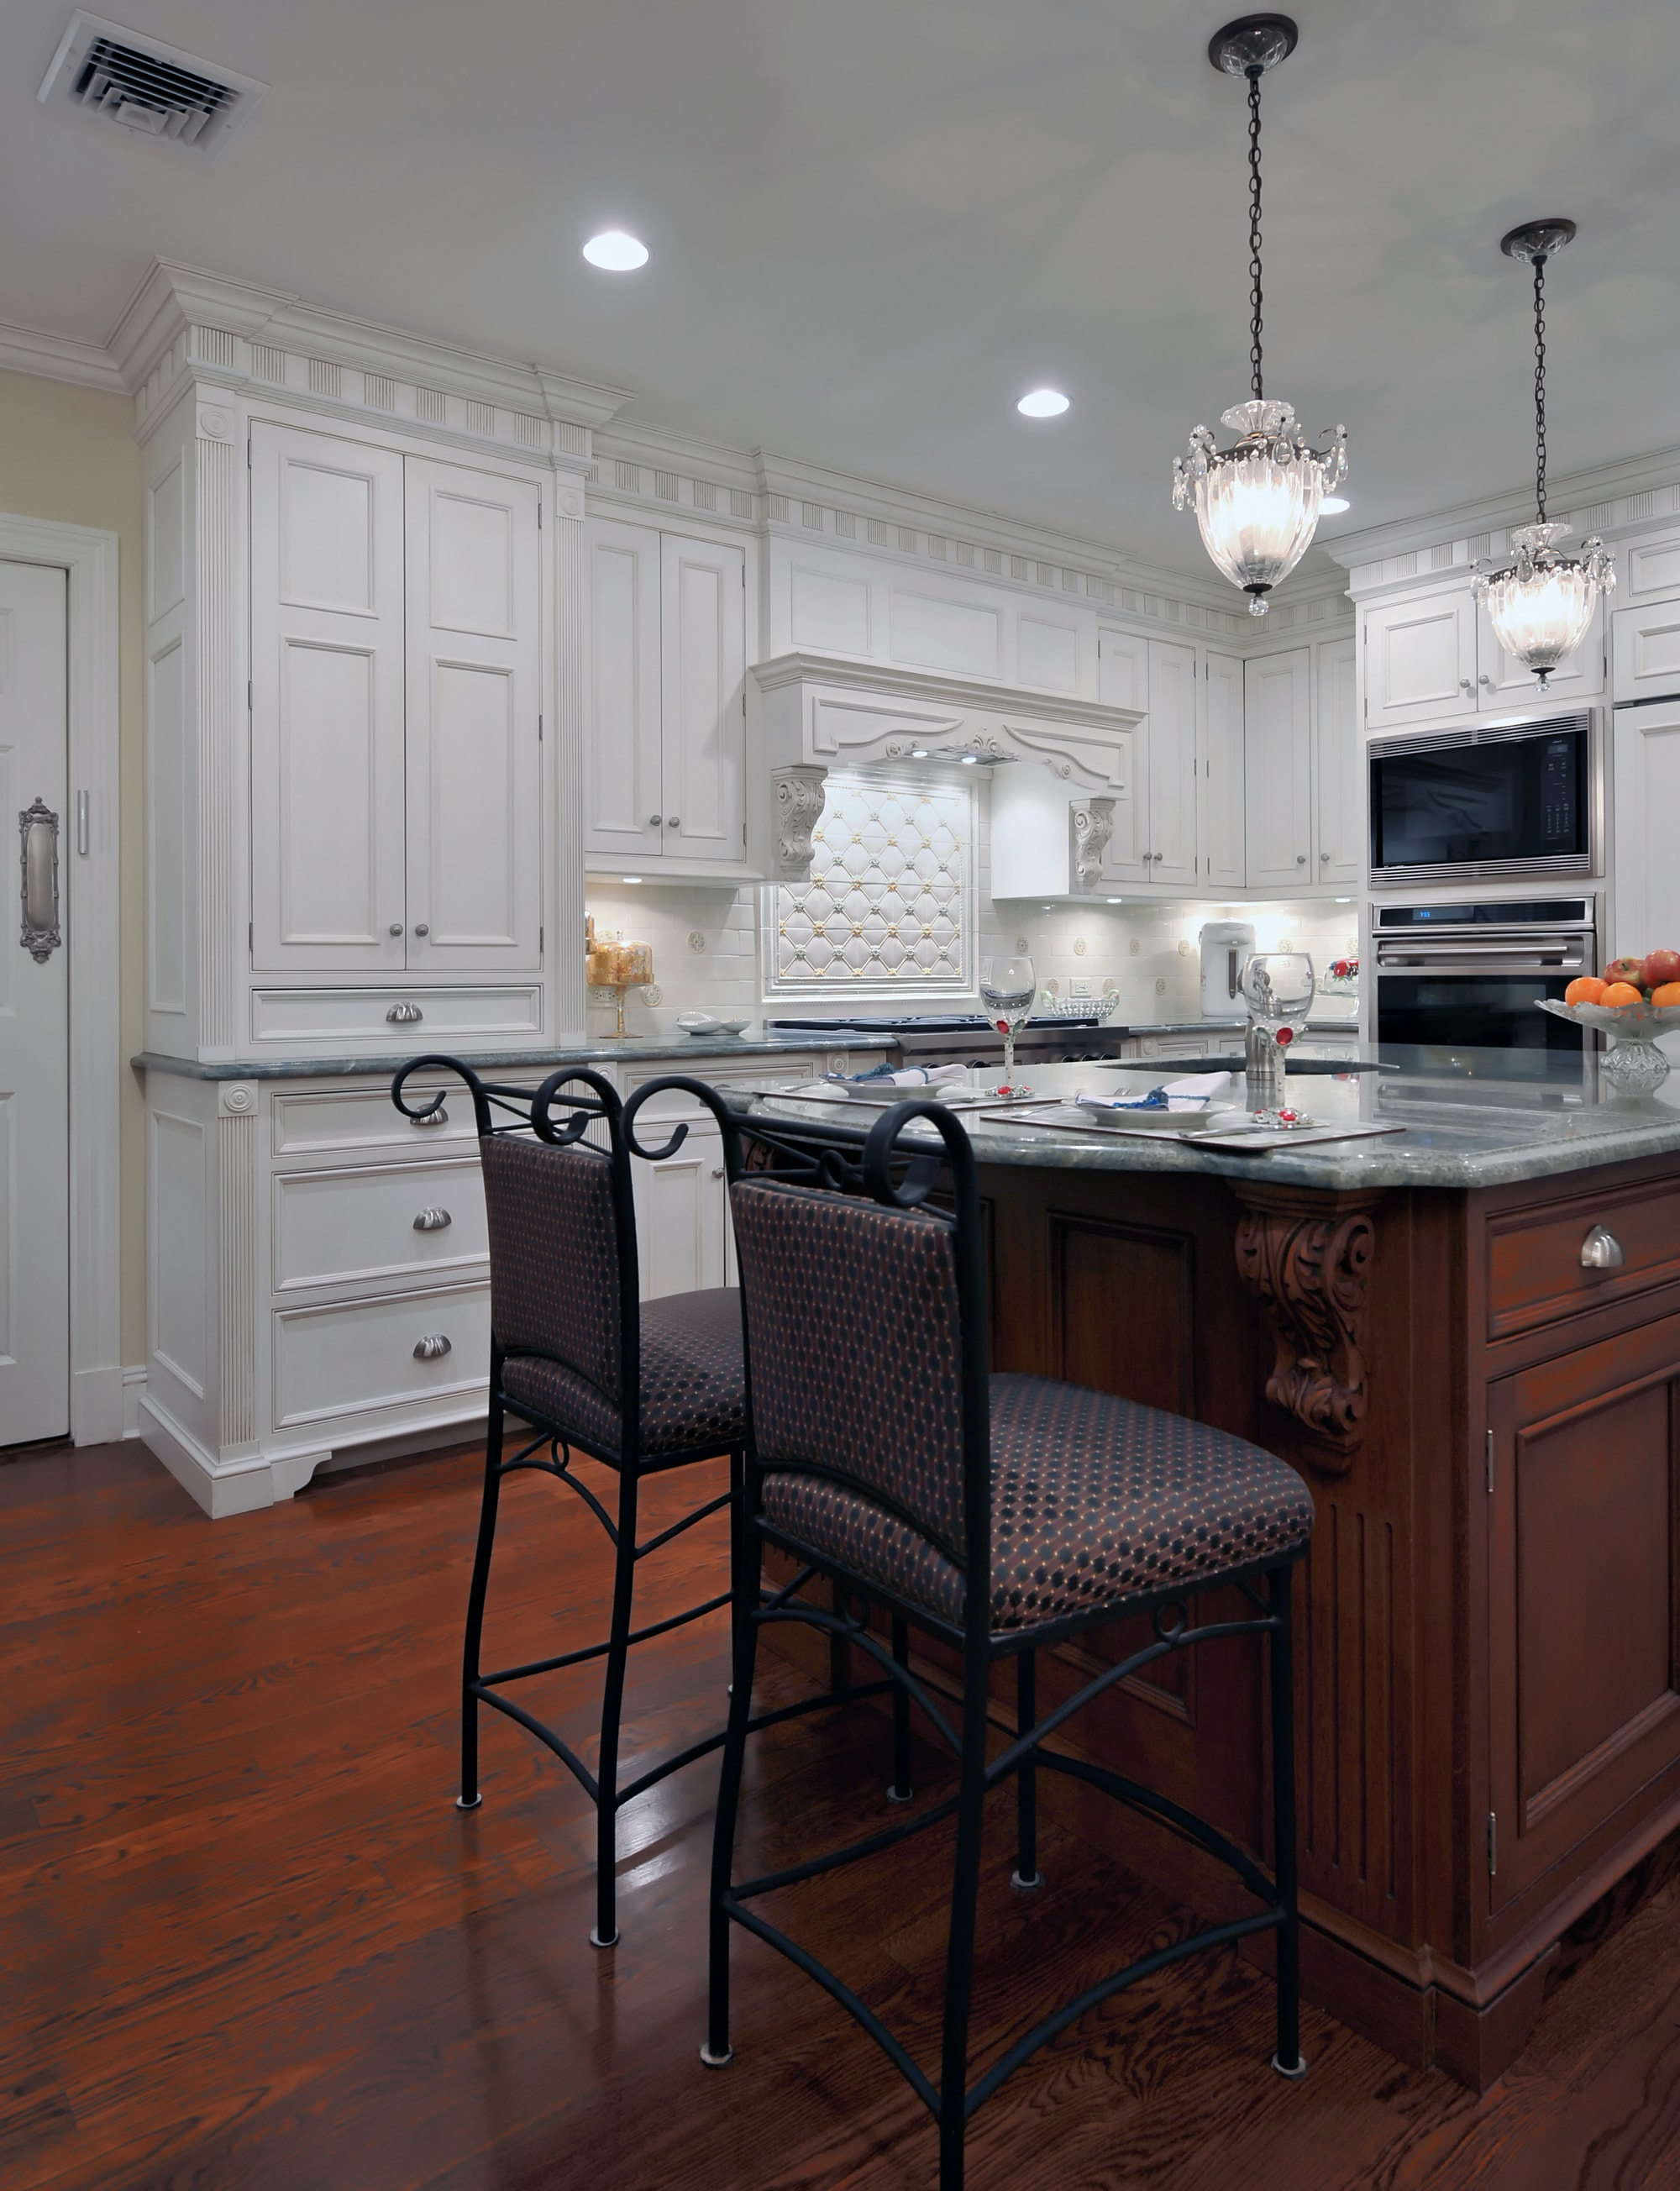 Traditional style kitchen with trendy light design